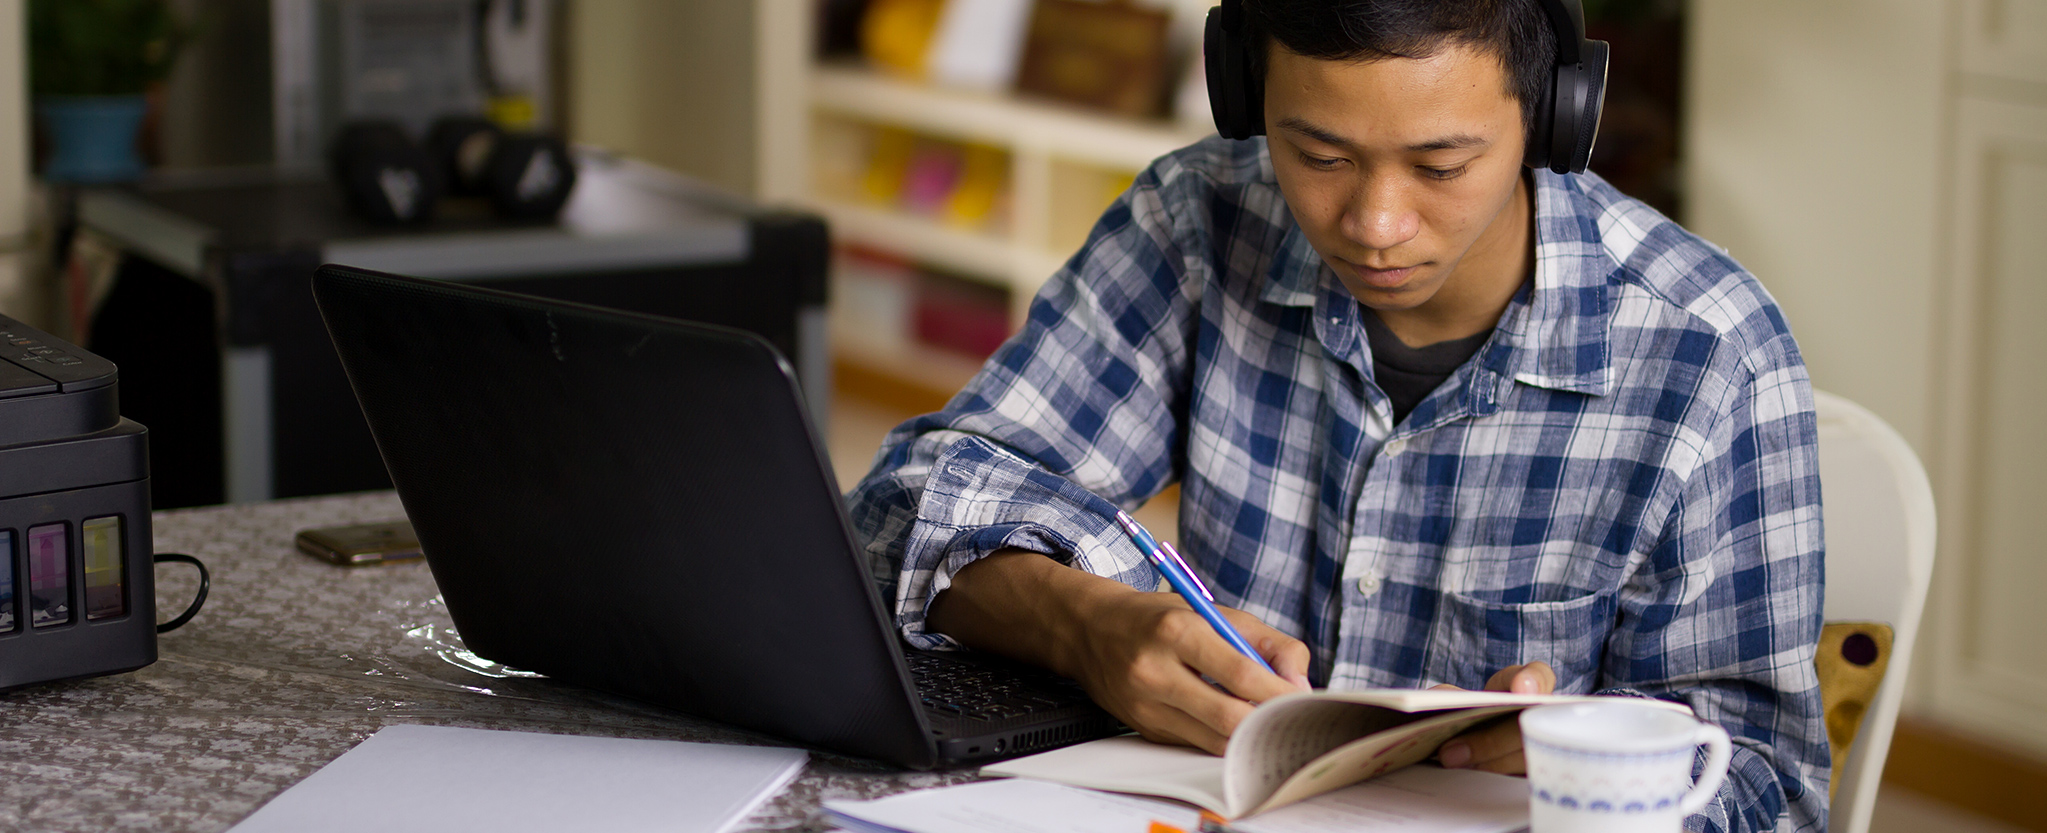 A student studies from his home office.